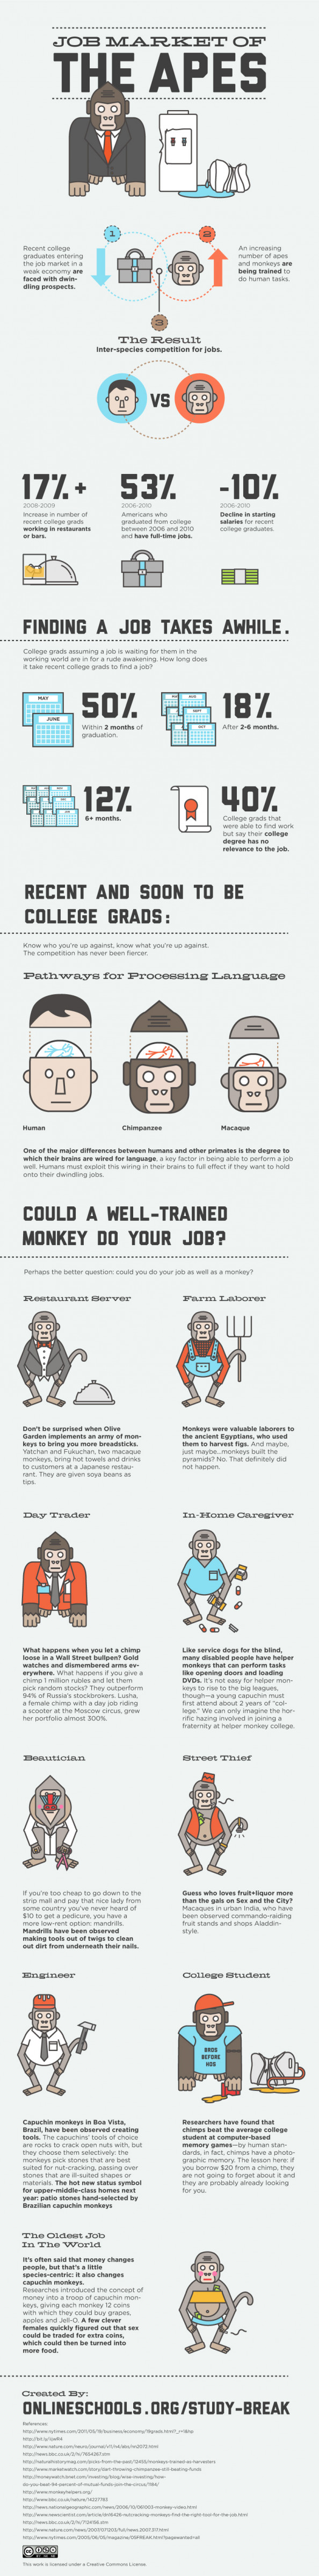 Job Market of The Apes Infographic